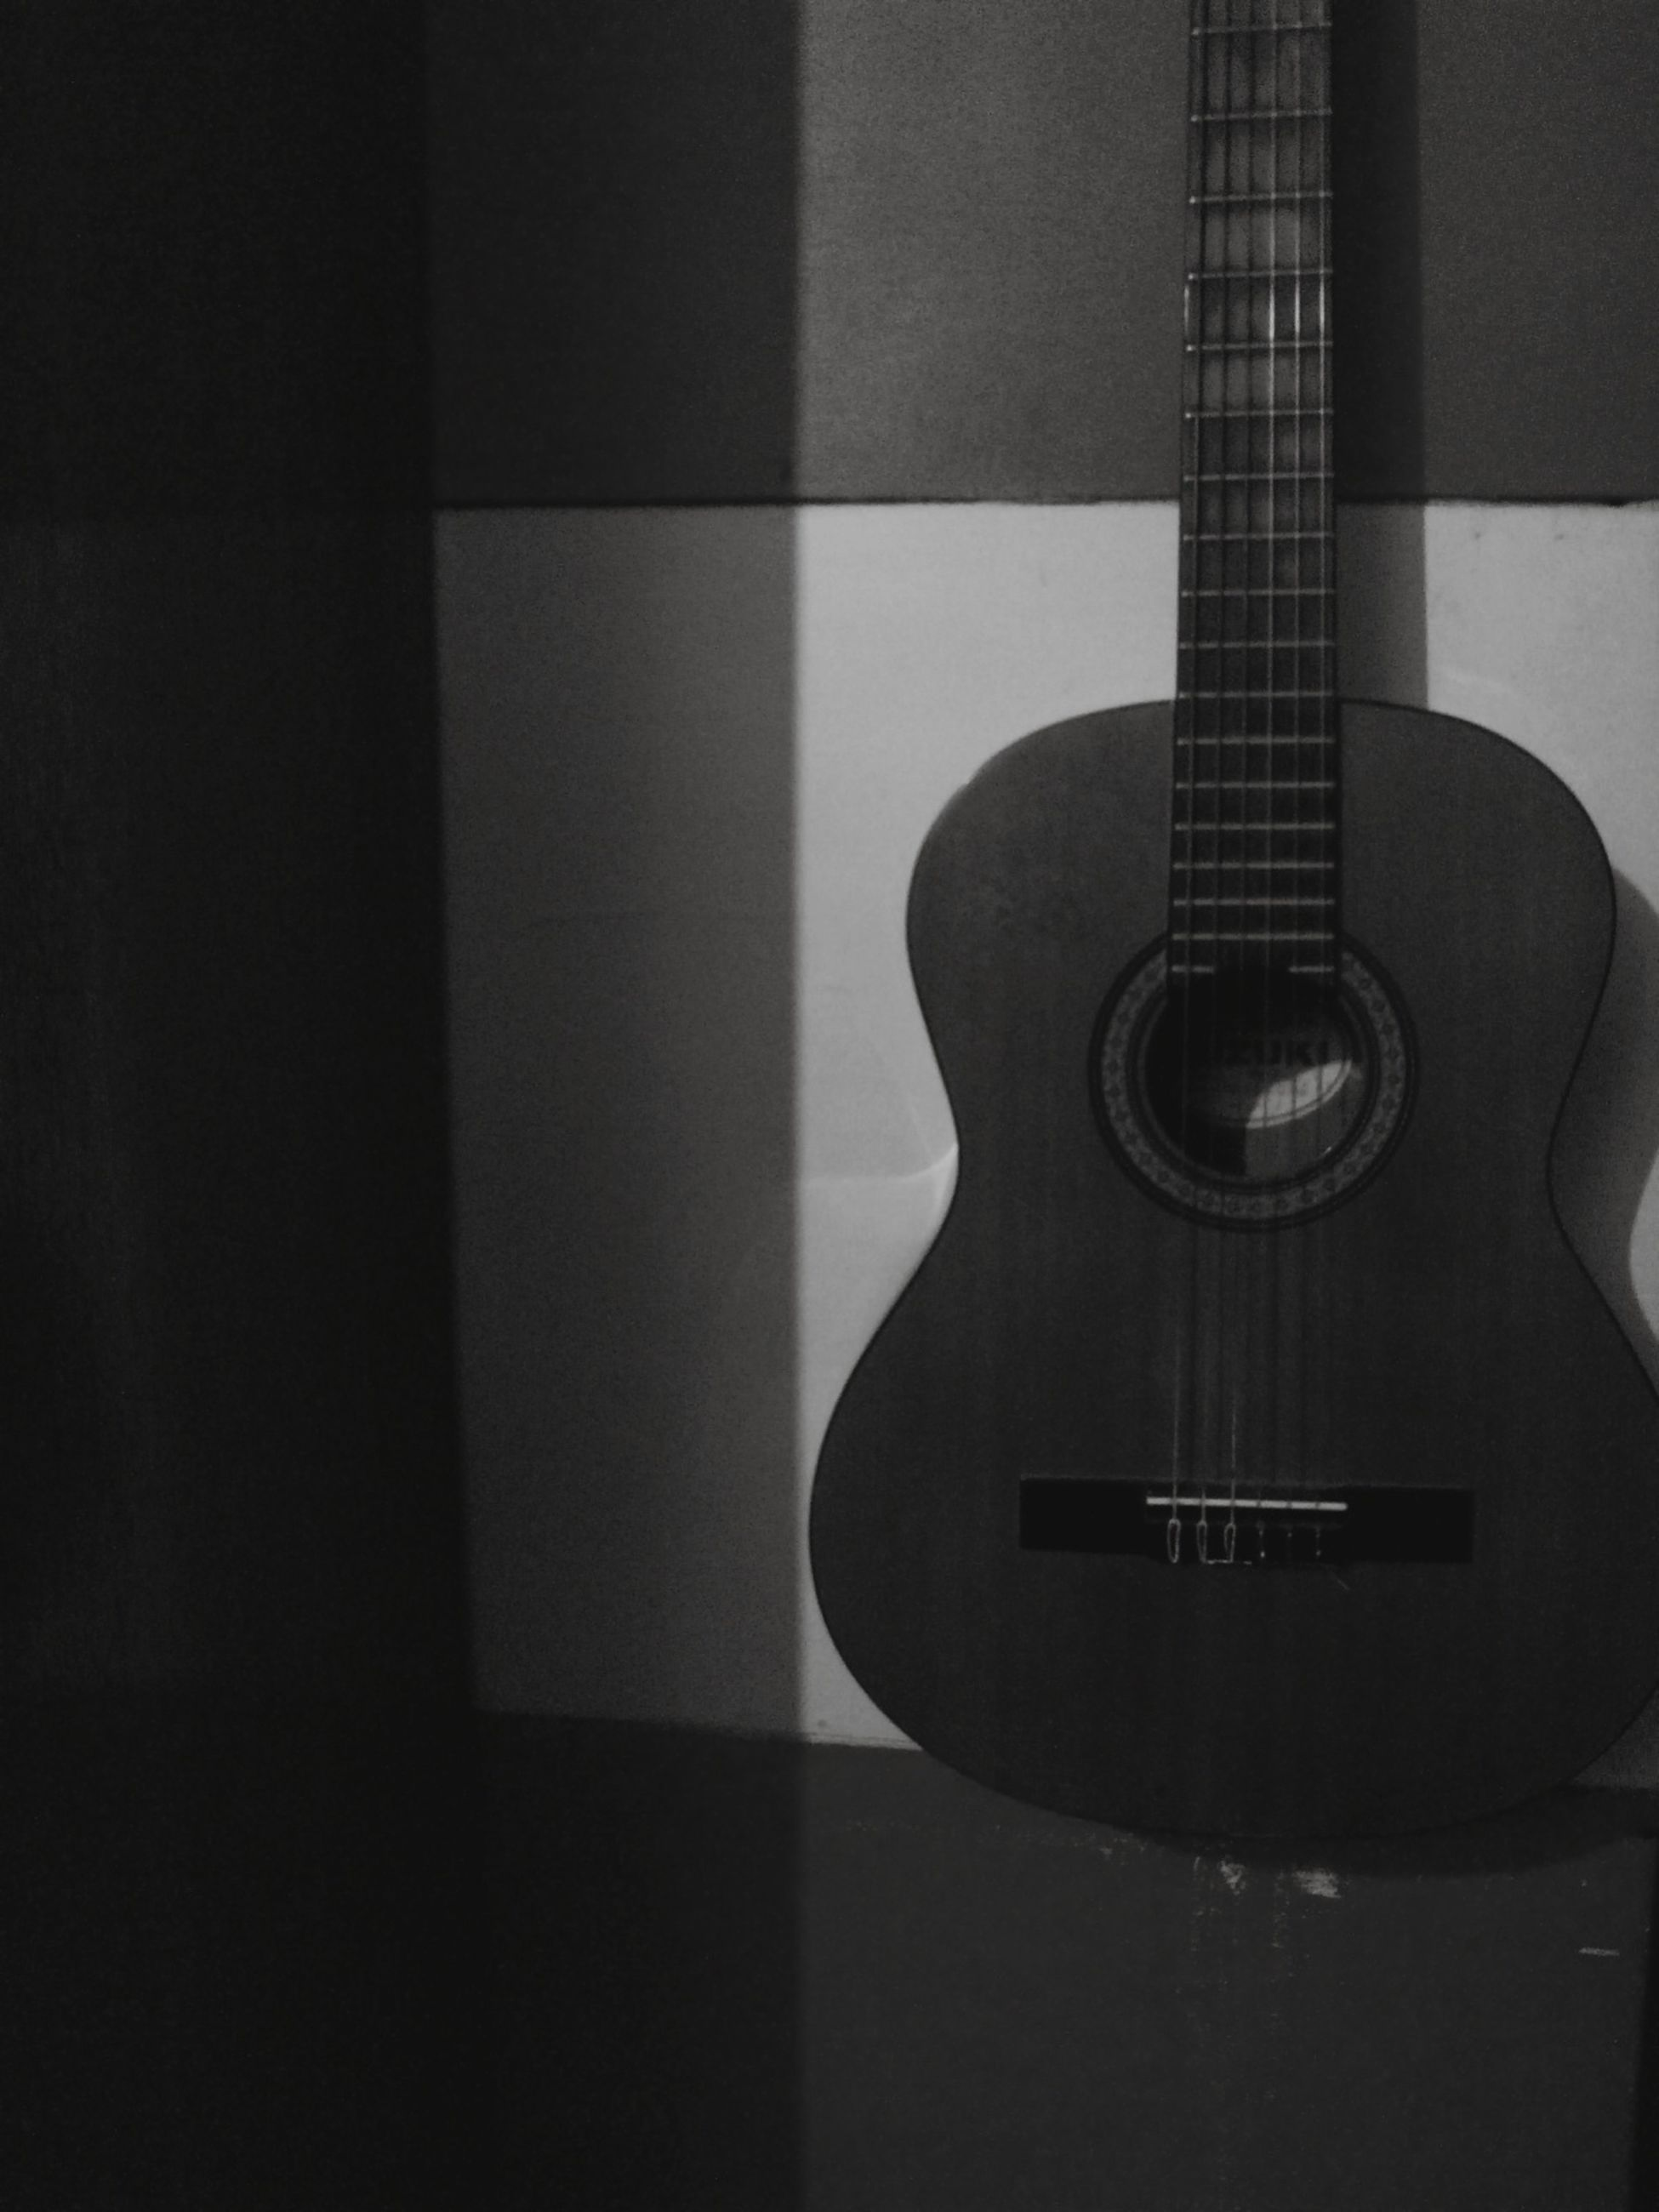 indoors, music, musical instrument, still life, guitar, arts culture and entertainment, technology, close-up, table, home interior, musical equipment, no people, wall - building feature, single object, musical instrument string, string instrument, metal, modern, shadow, acoustic guitar